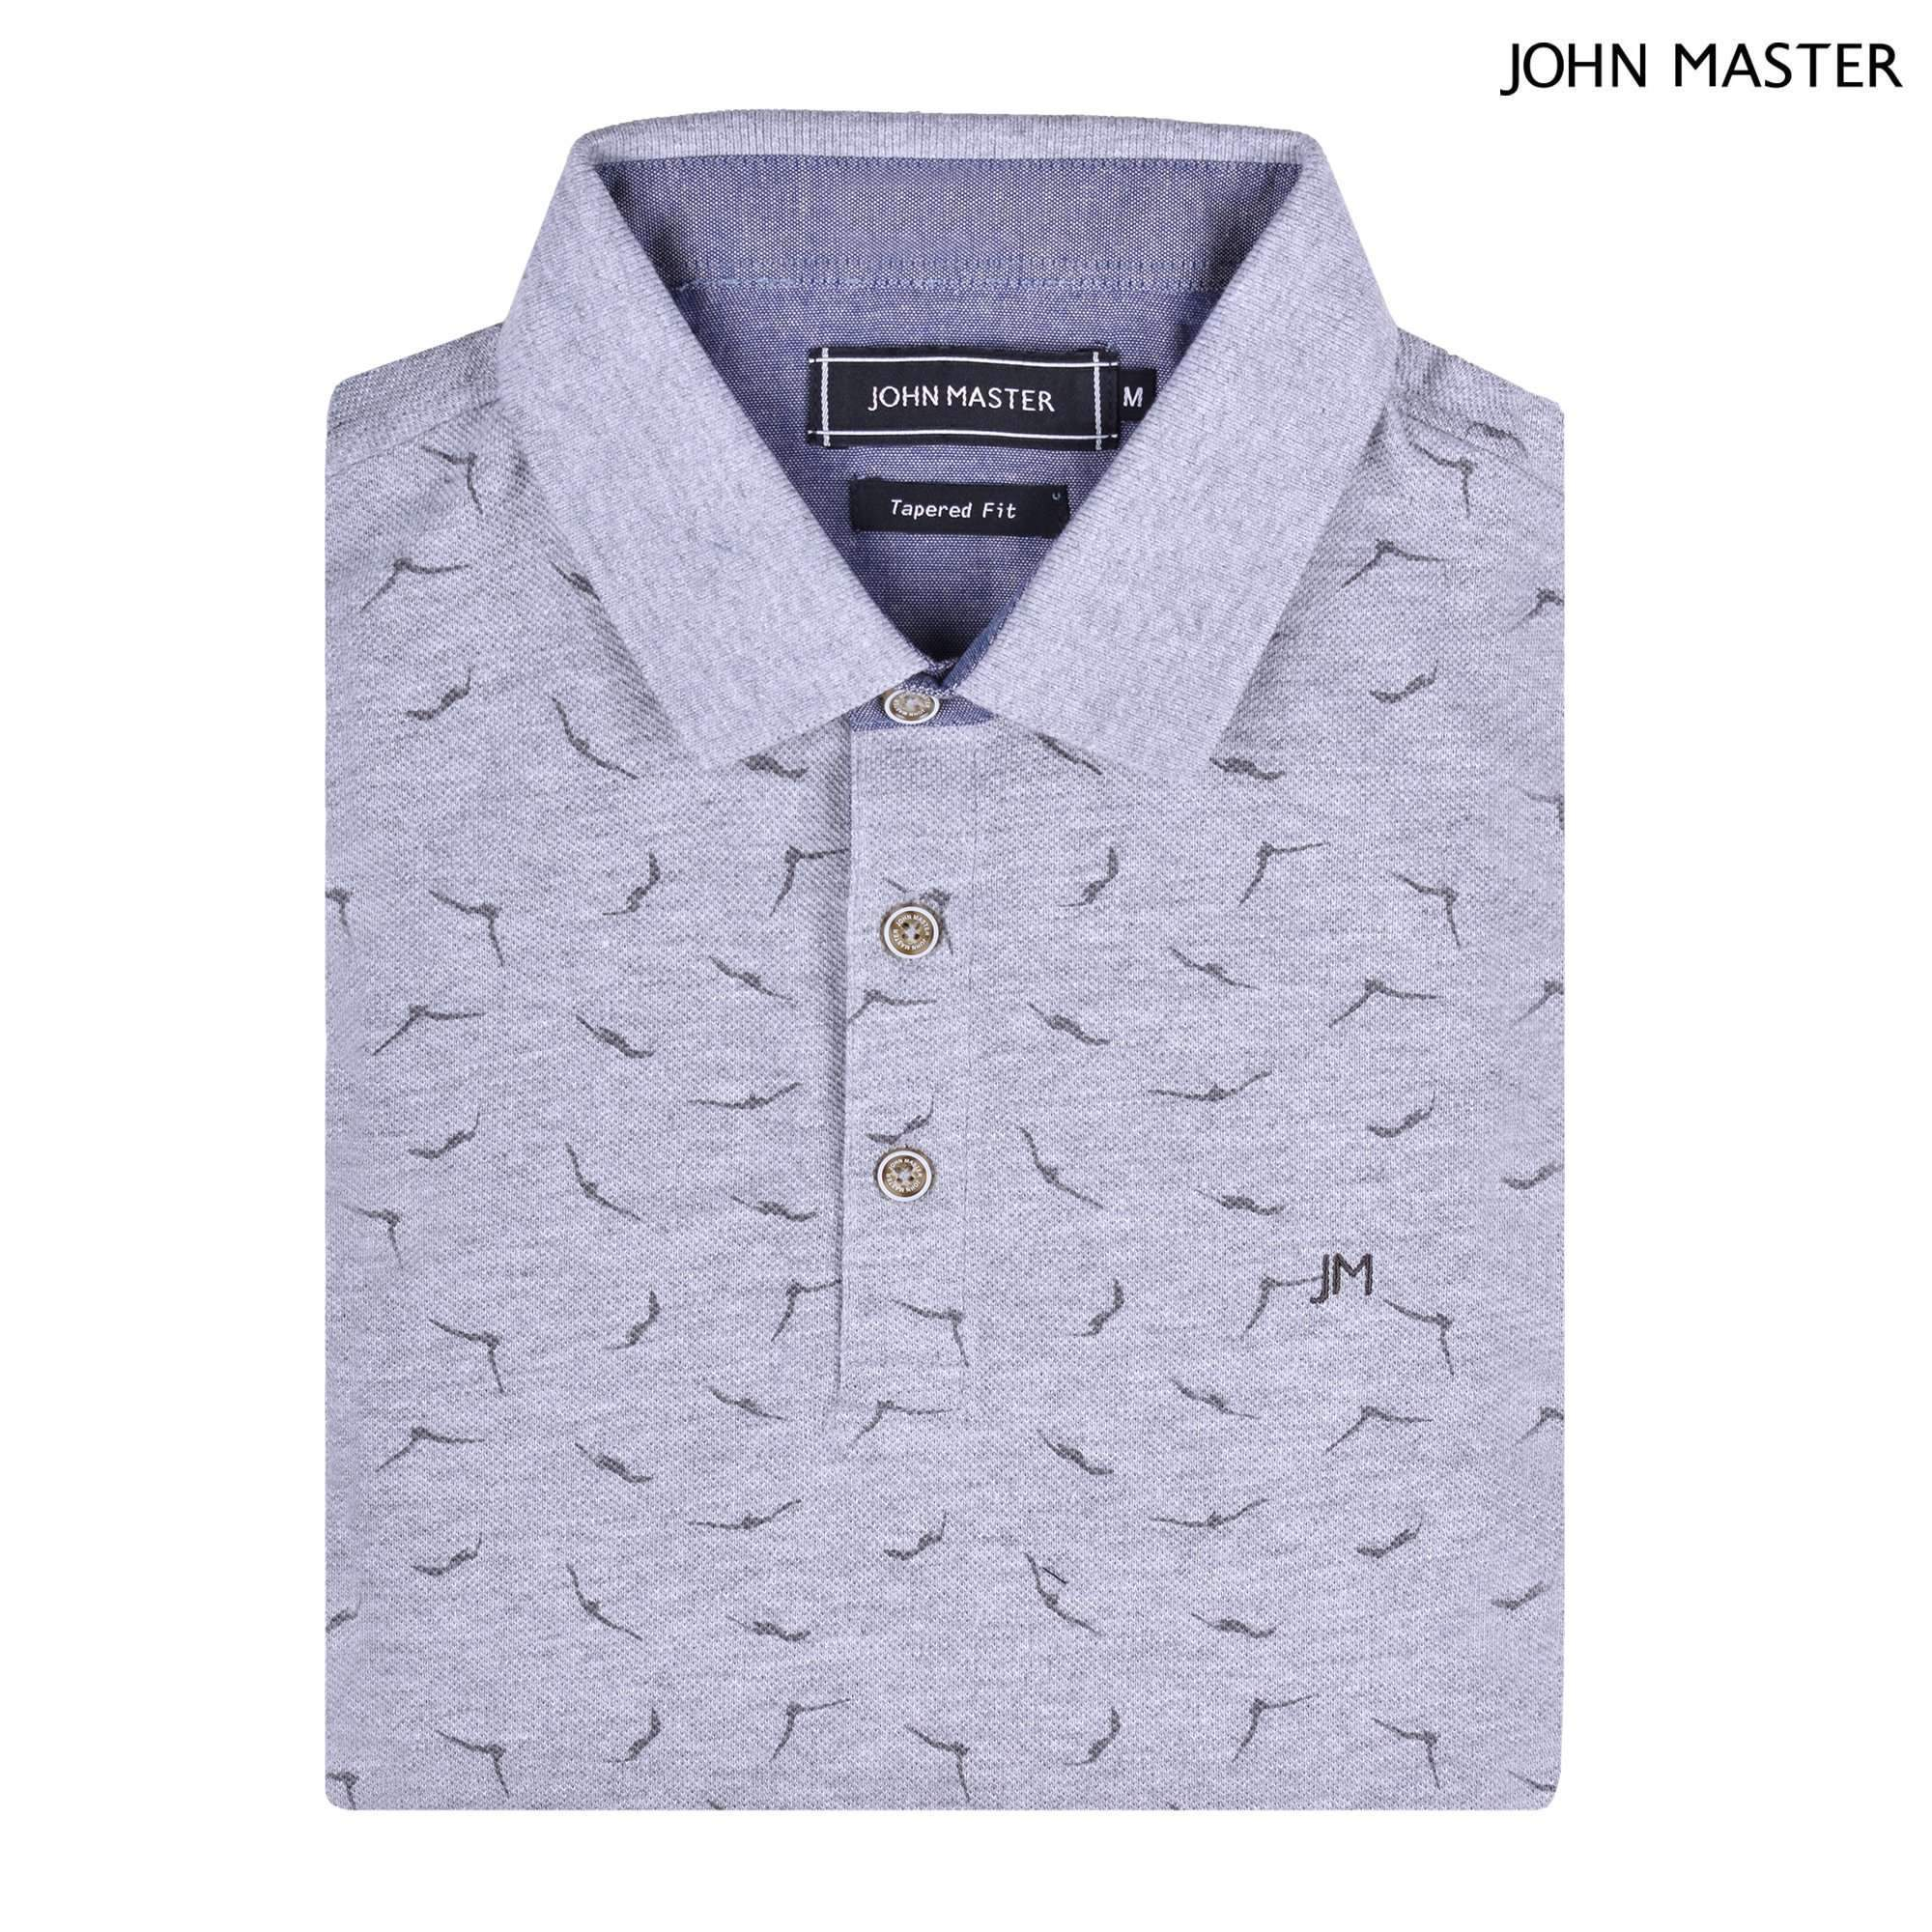 John Master Cotton Polo Tee Tapered Fit Gray 8087011 - G5 : Buy John Master online at CMG.MY